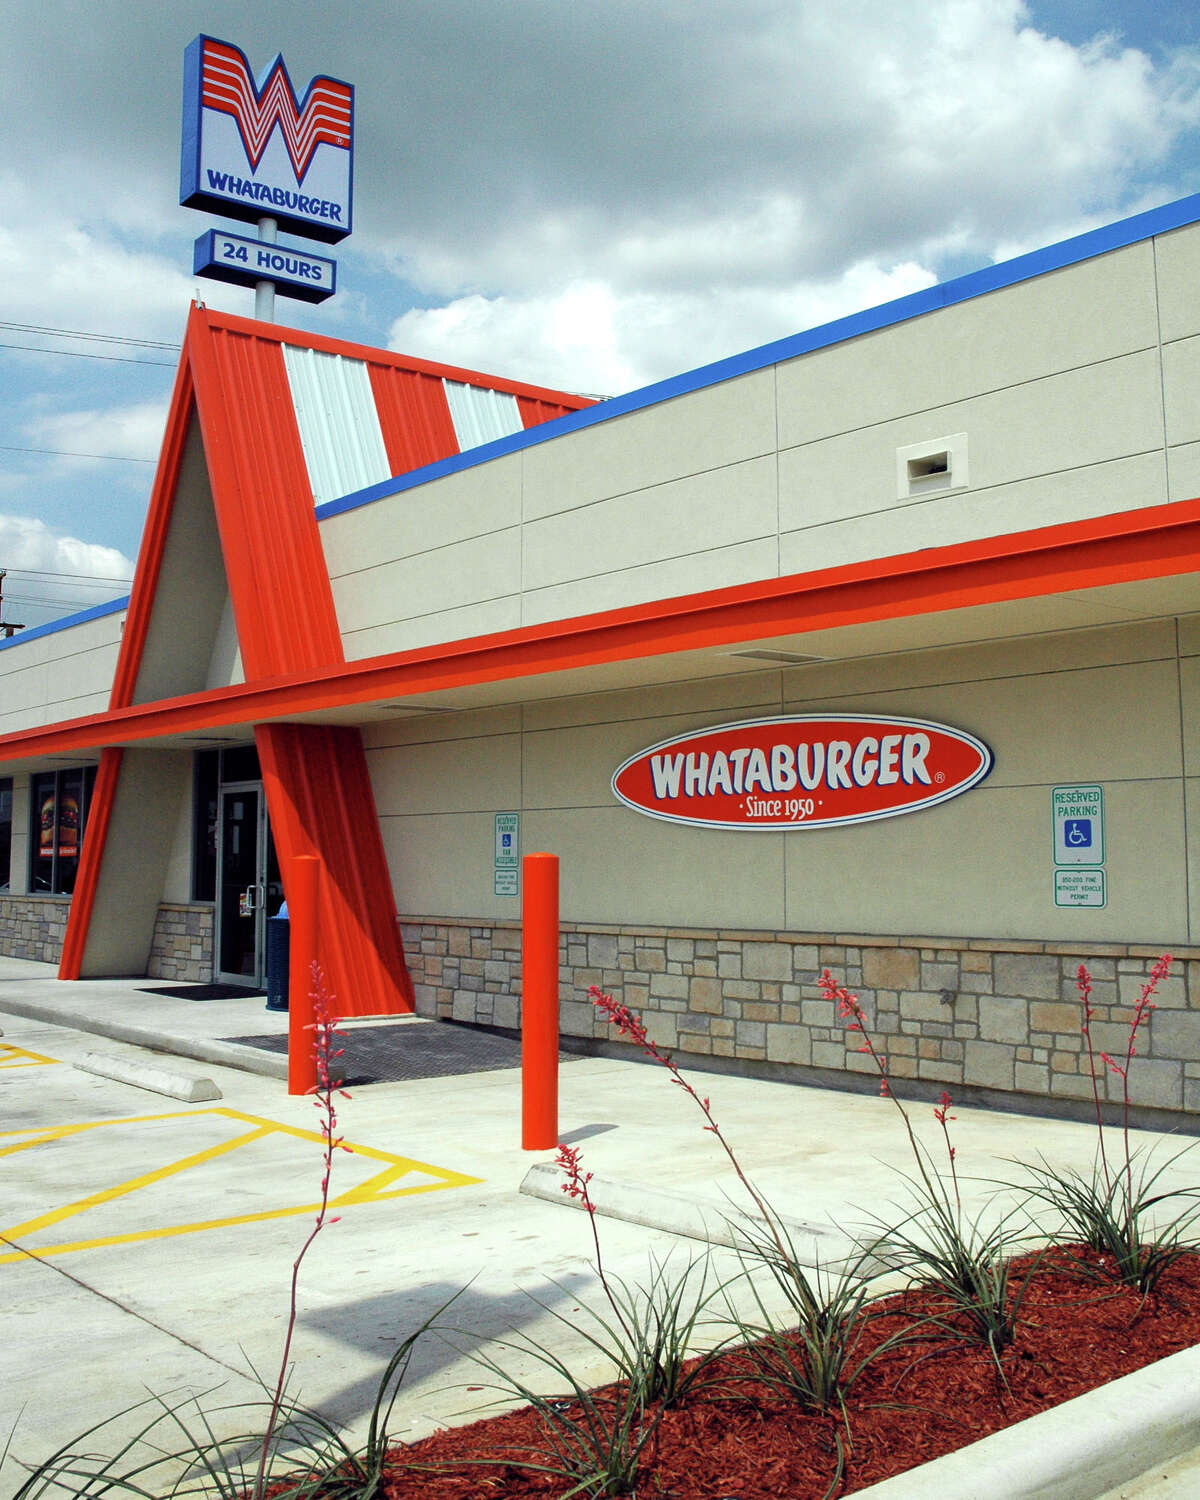 But Whataburger has more stores in more states. There are more than 800 Whataburger restaurants across 10 states: Arizona, Arkansas, Alabama, Florida, Georgia, Louisiana, Mississippi, New Mexico, Oklahoma and of course Texas. In-N-Out has roughly 347 restaurants in five states: California, Nevada, Arizona, Utah and Texas.Score: In-N-Out 1, Whataburger 1